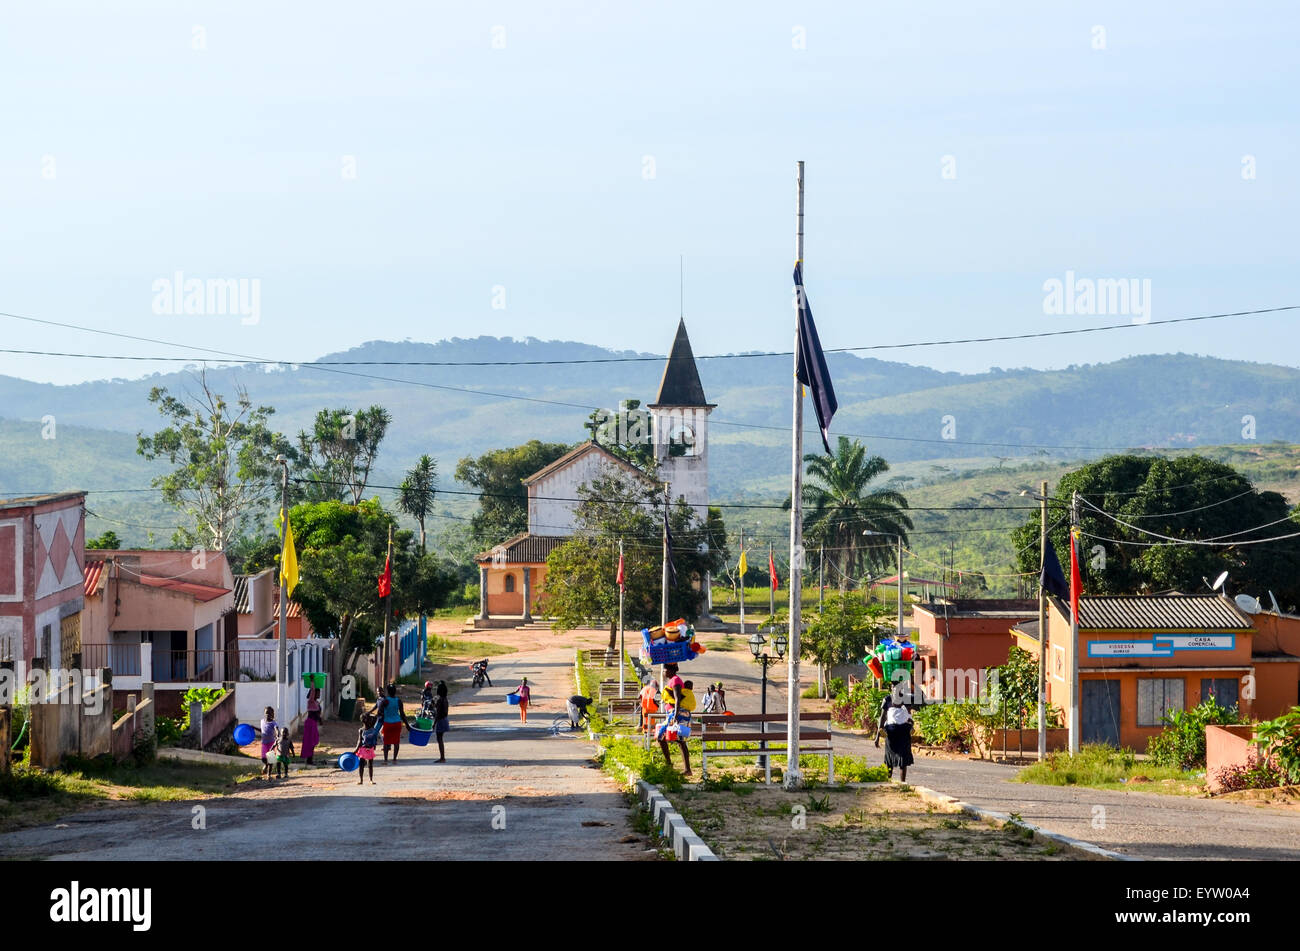 Town of Quibaxe in Angola - Stock Image